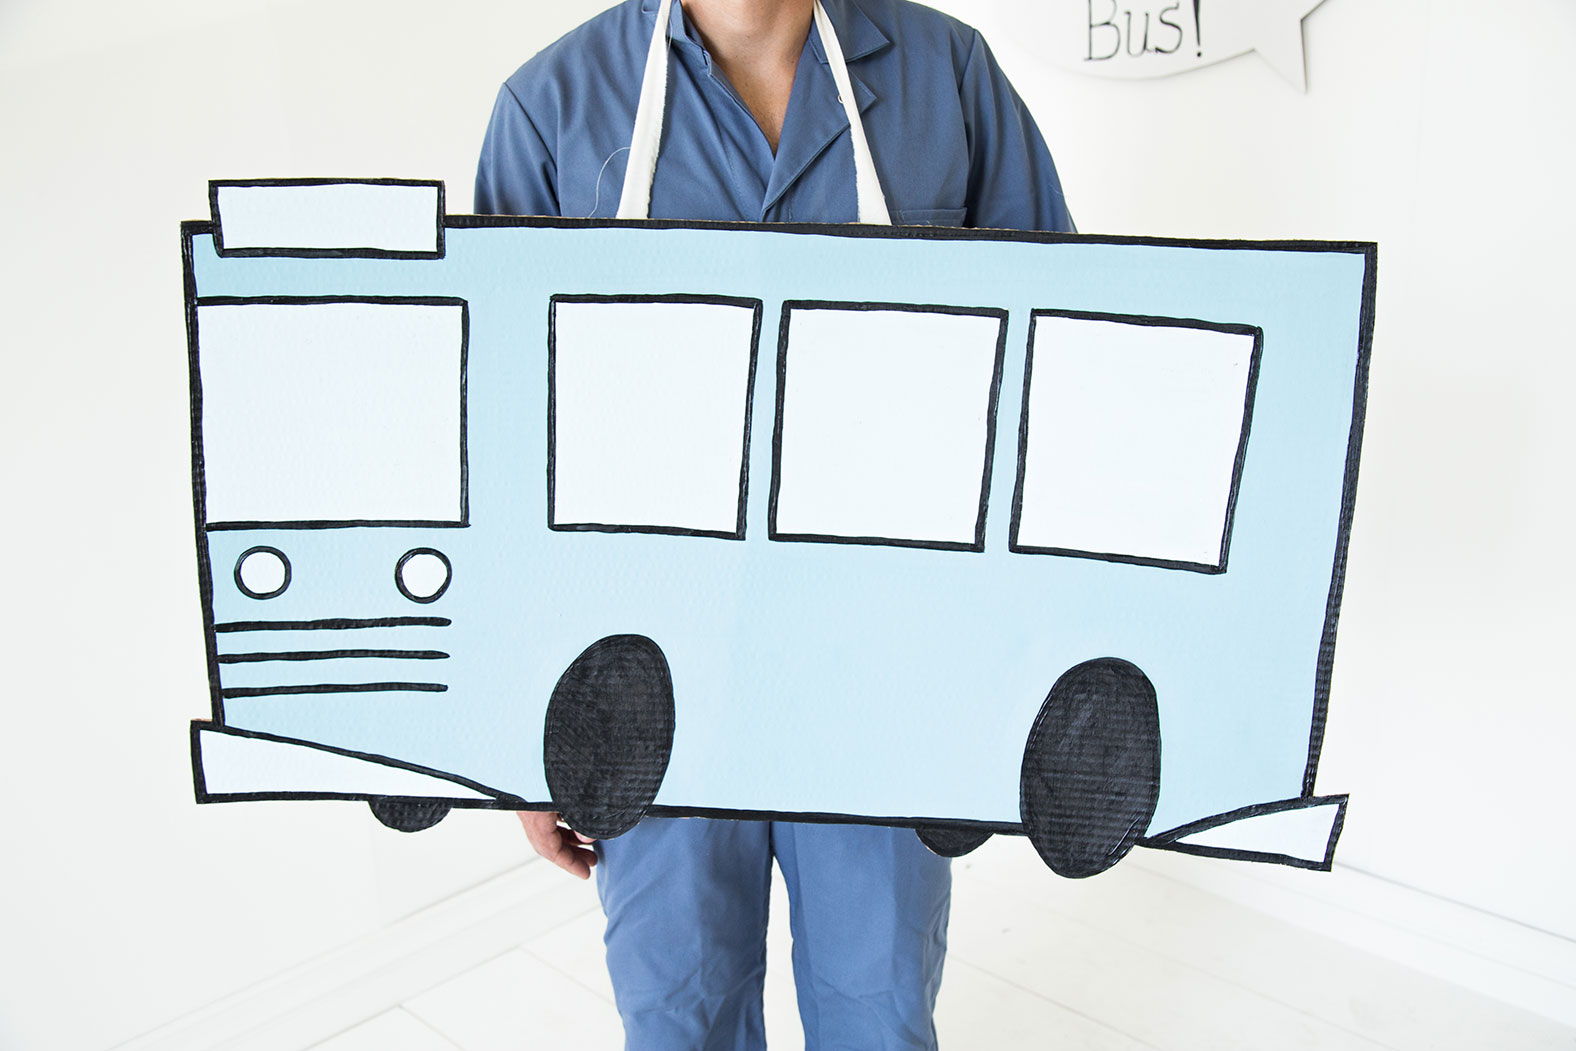 bus-costume-blue-book